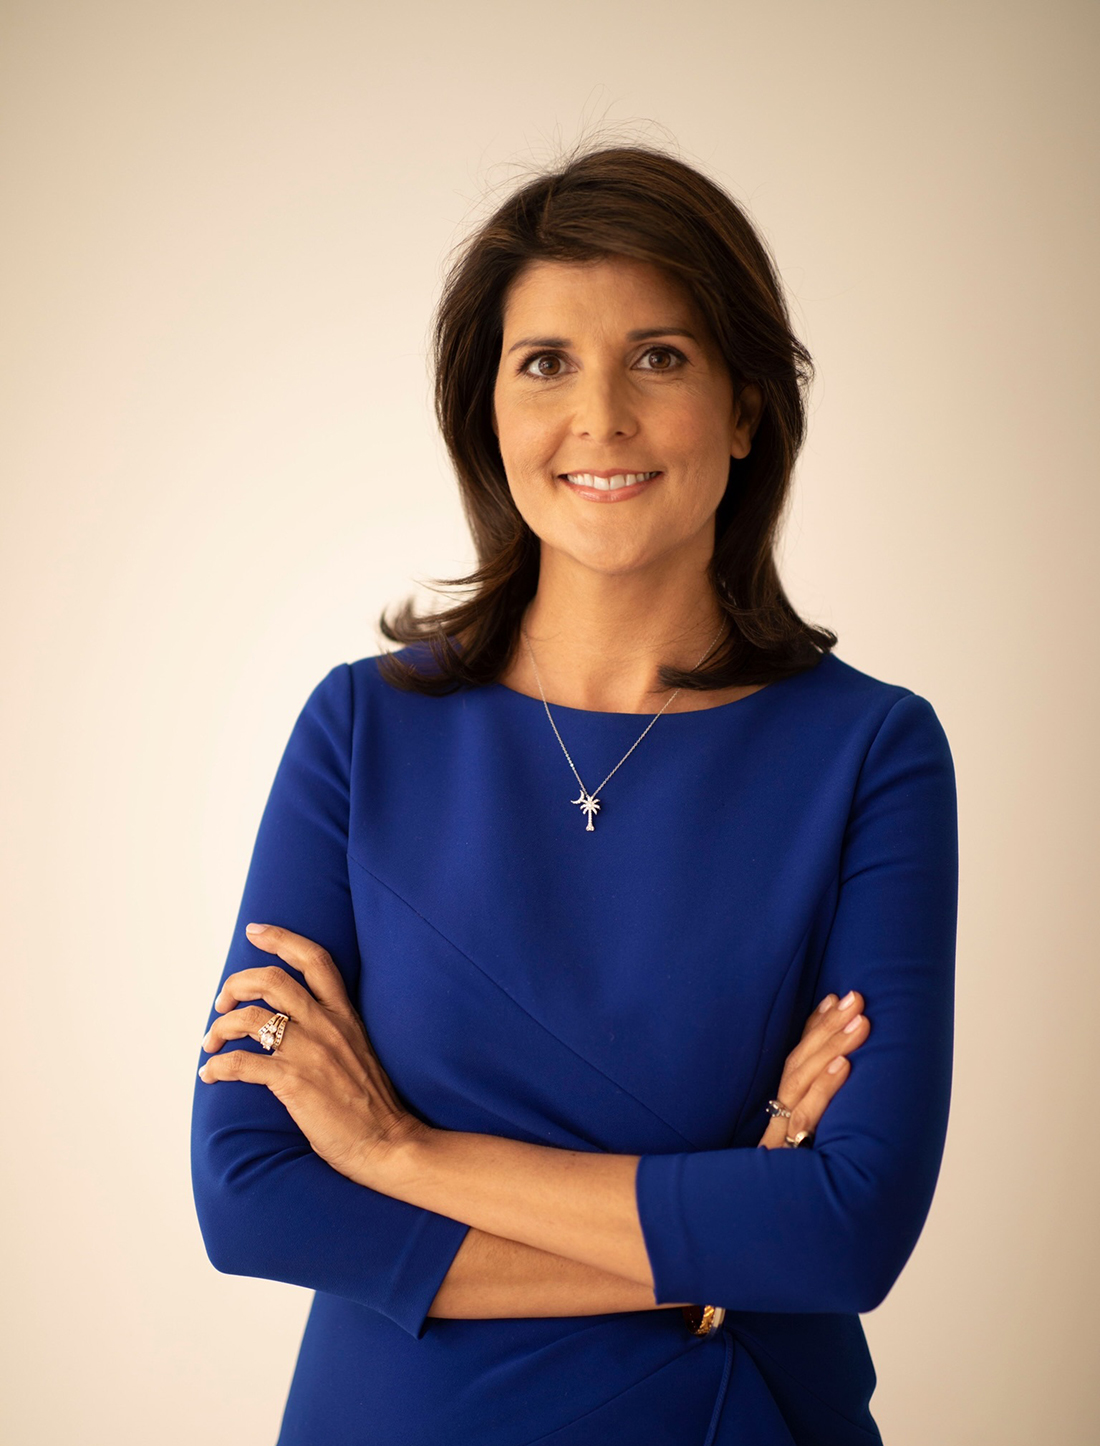 Event - Conversation and Book Event with Ambassador Nikki Haley